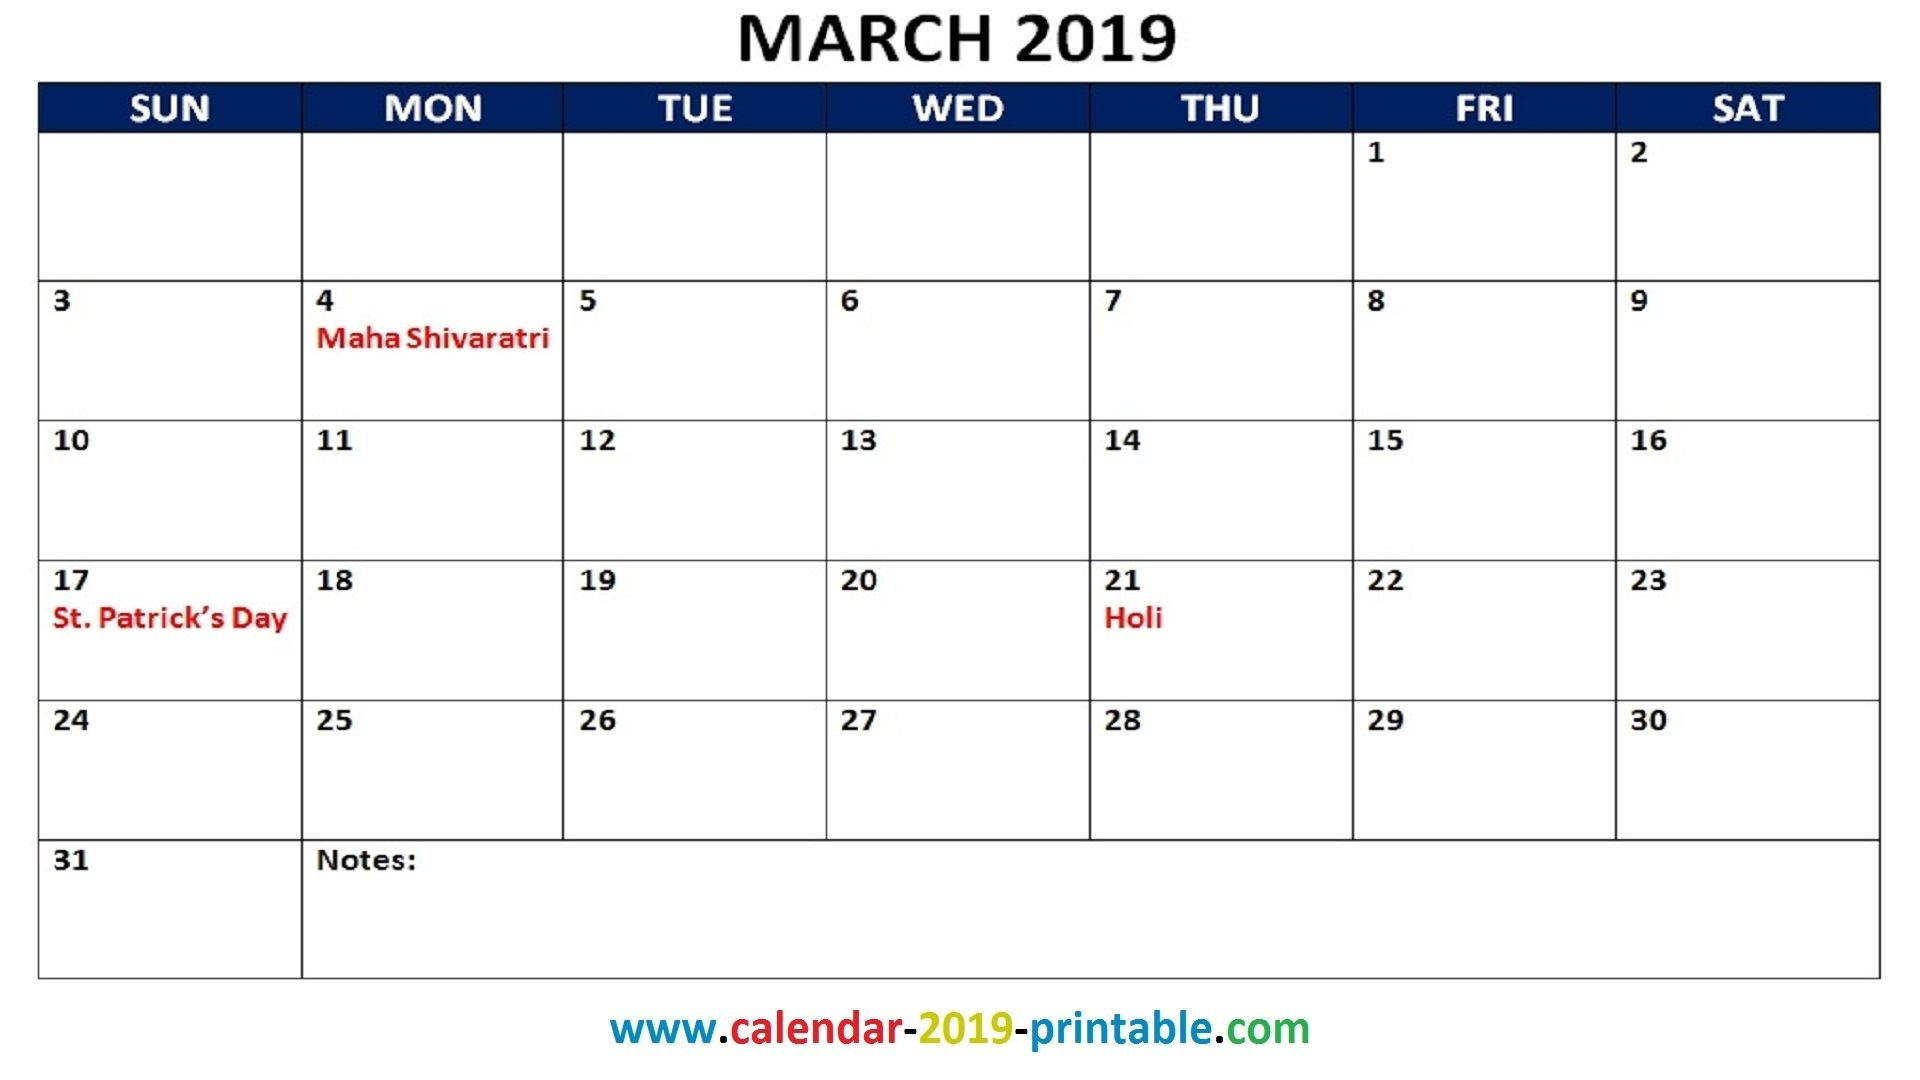 March 2019 Printable Calendar With Holidays